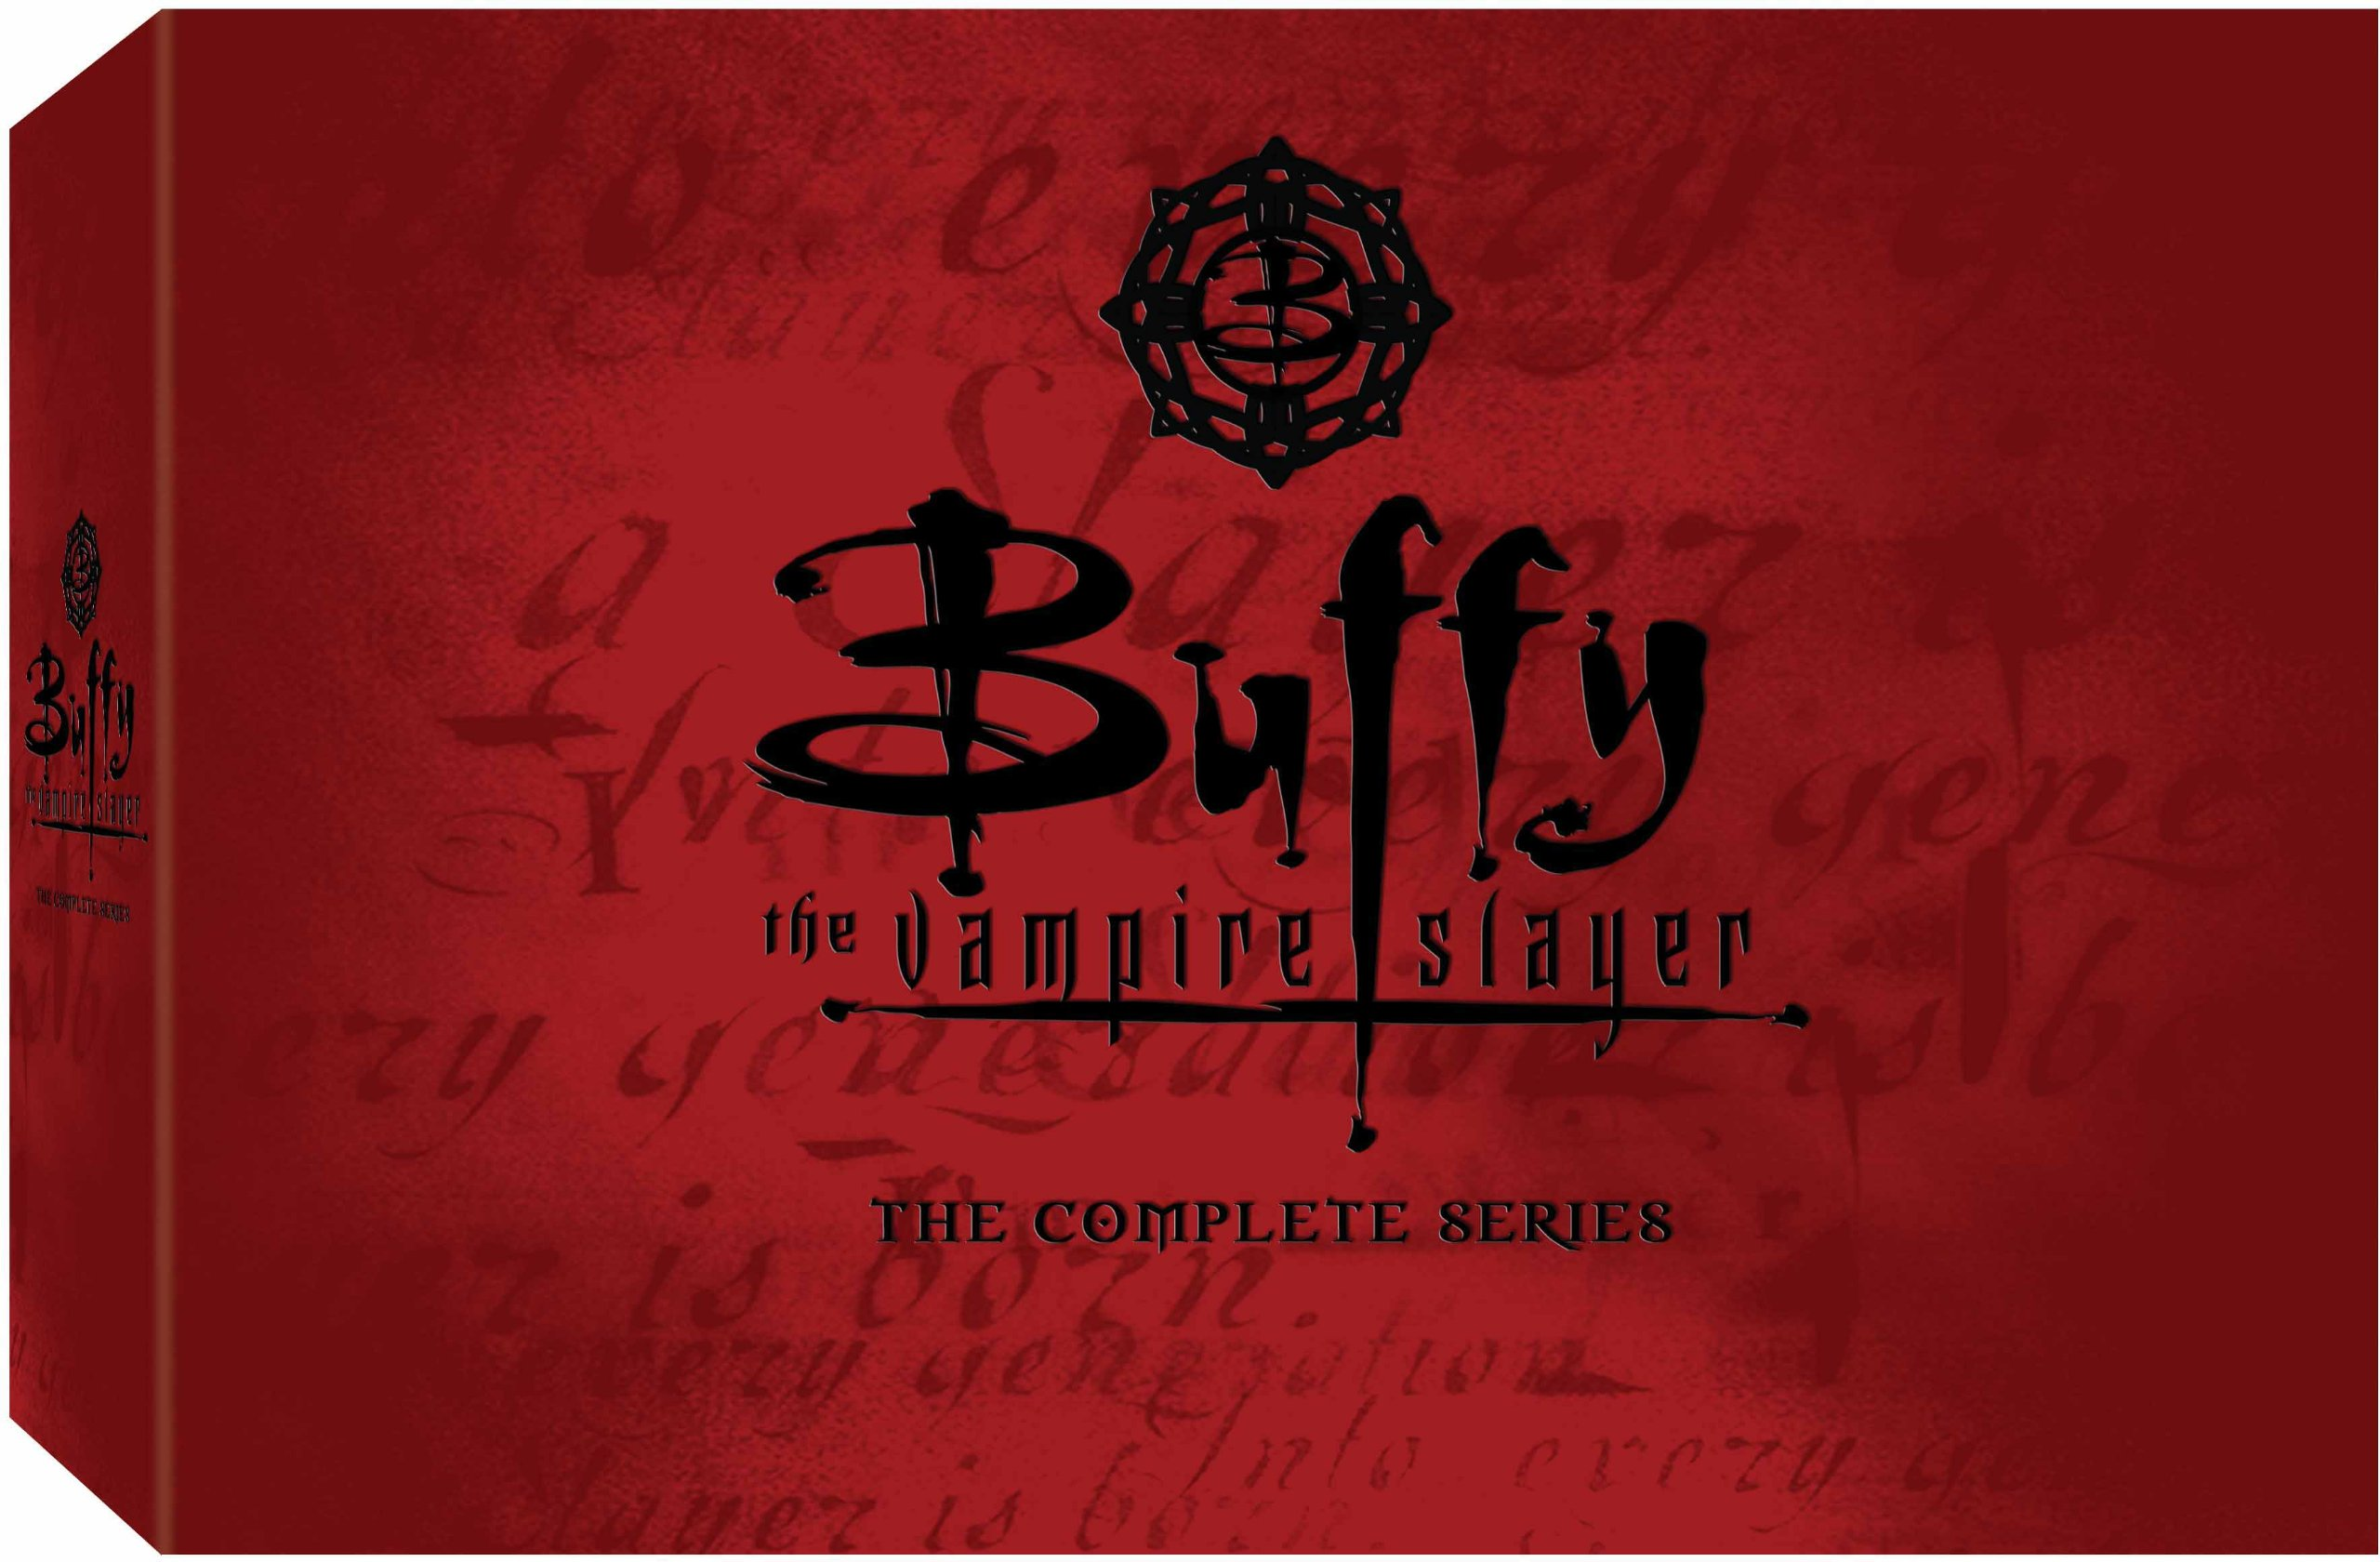 Buffy the Vampire Slayer: The Complete Series by 20TH Century Fox